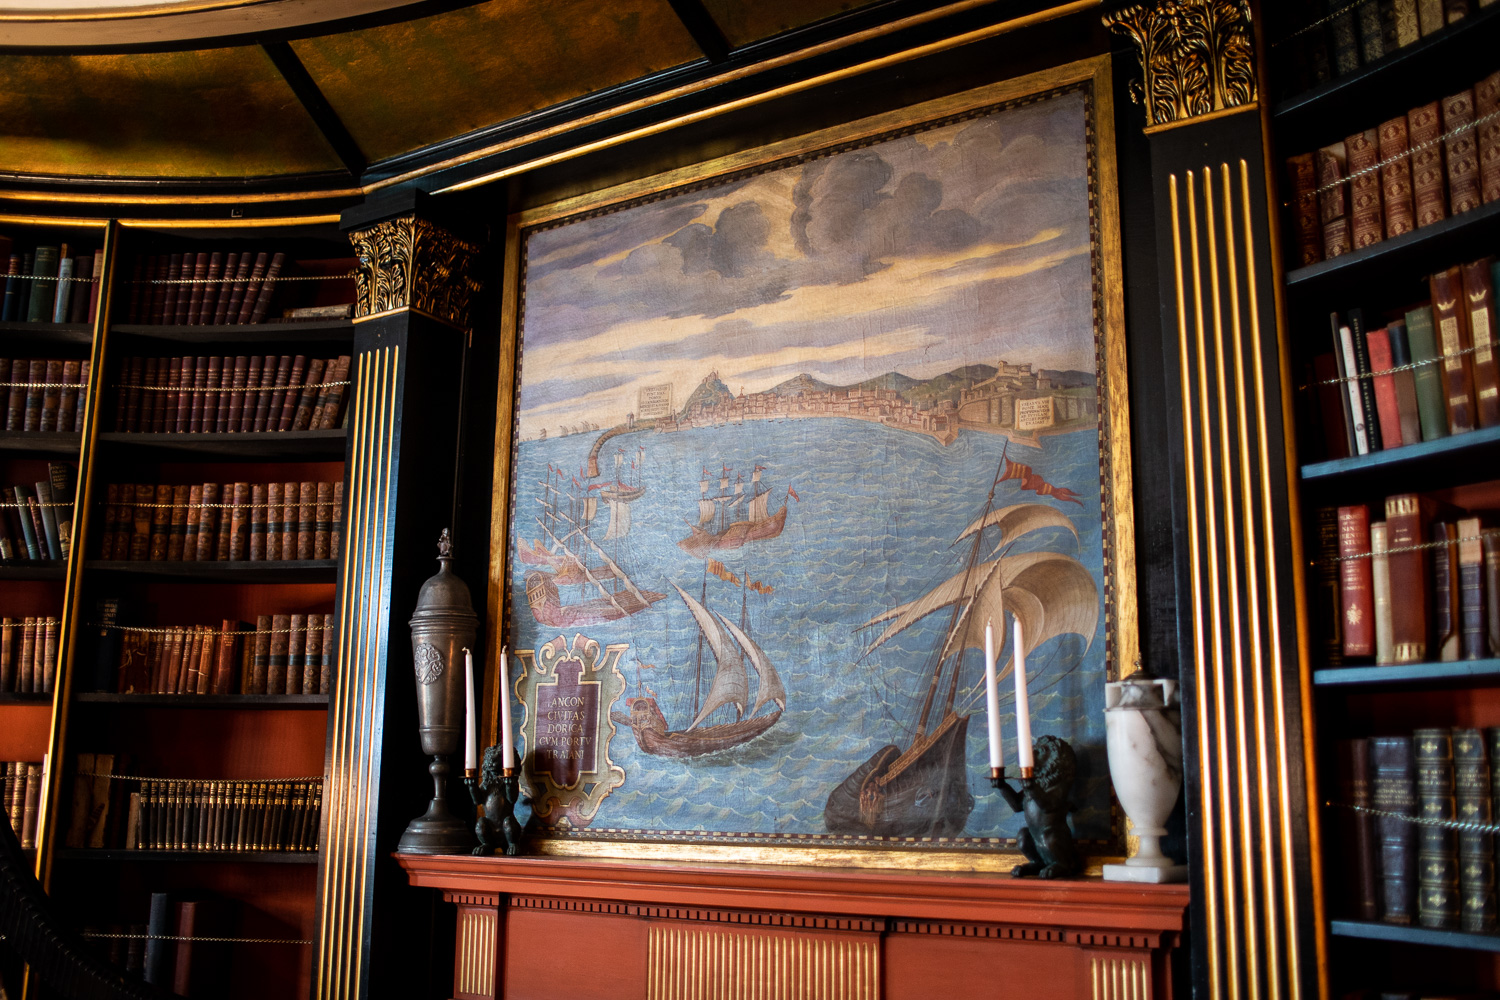 Detail from the library room.